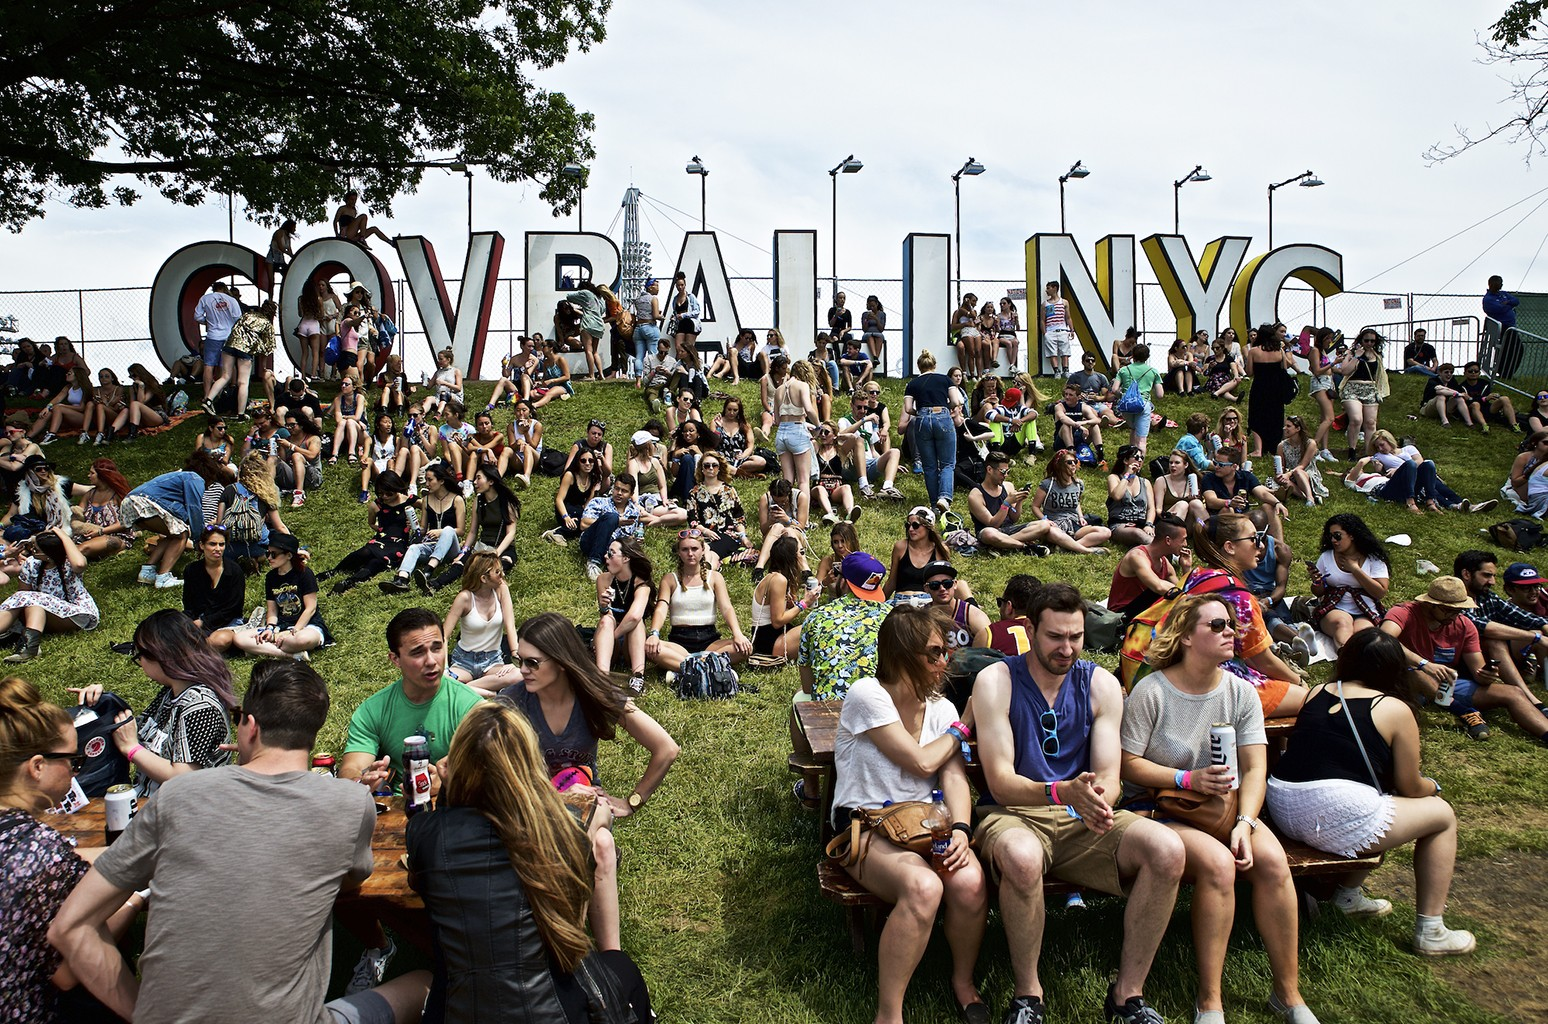 Governors Ball Music Festival at Randall's Island Park